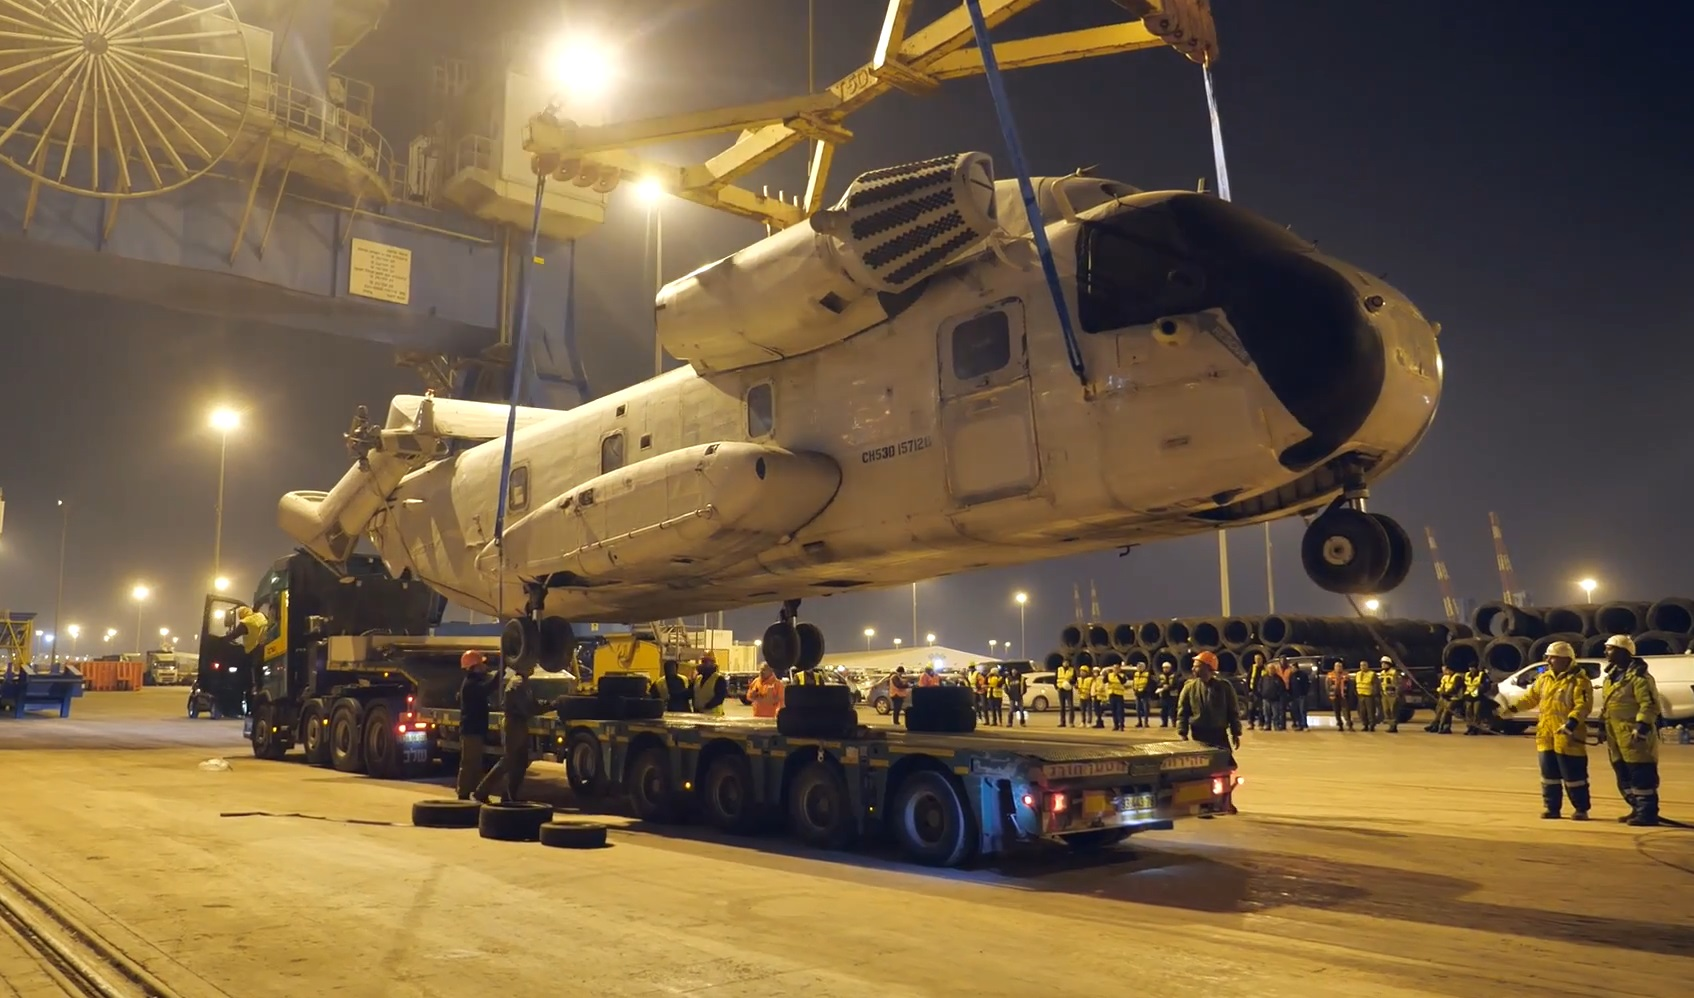 5993437 1 - Israel receives ex-U.S. Marine Corps helicopters – Defence Blog